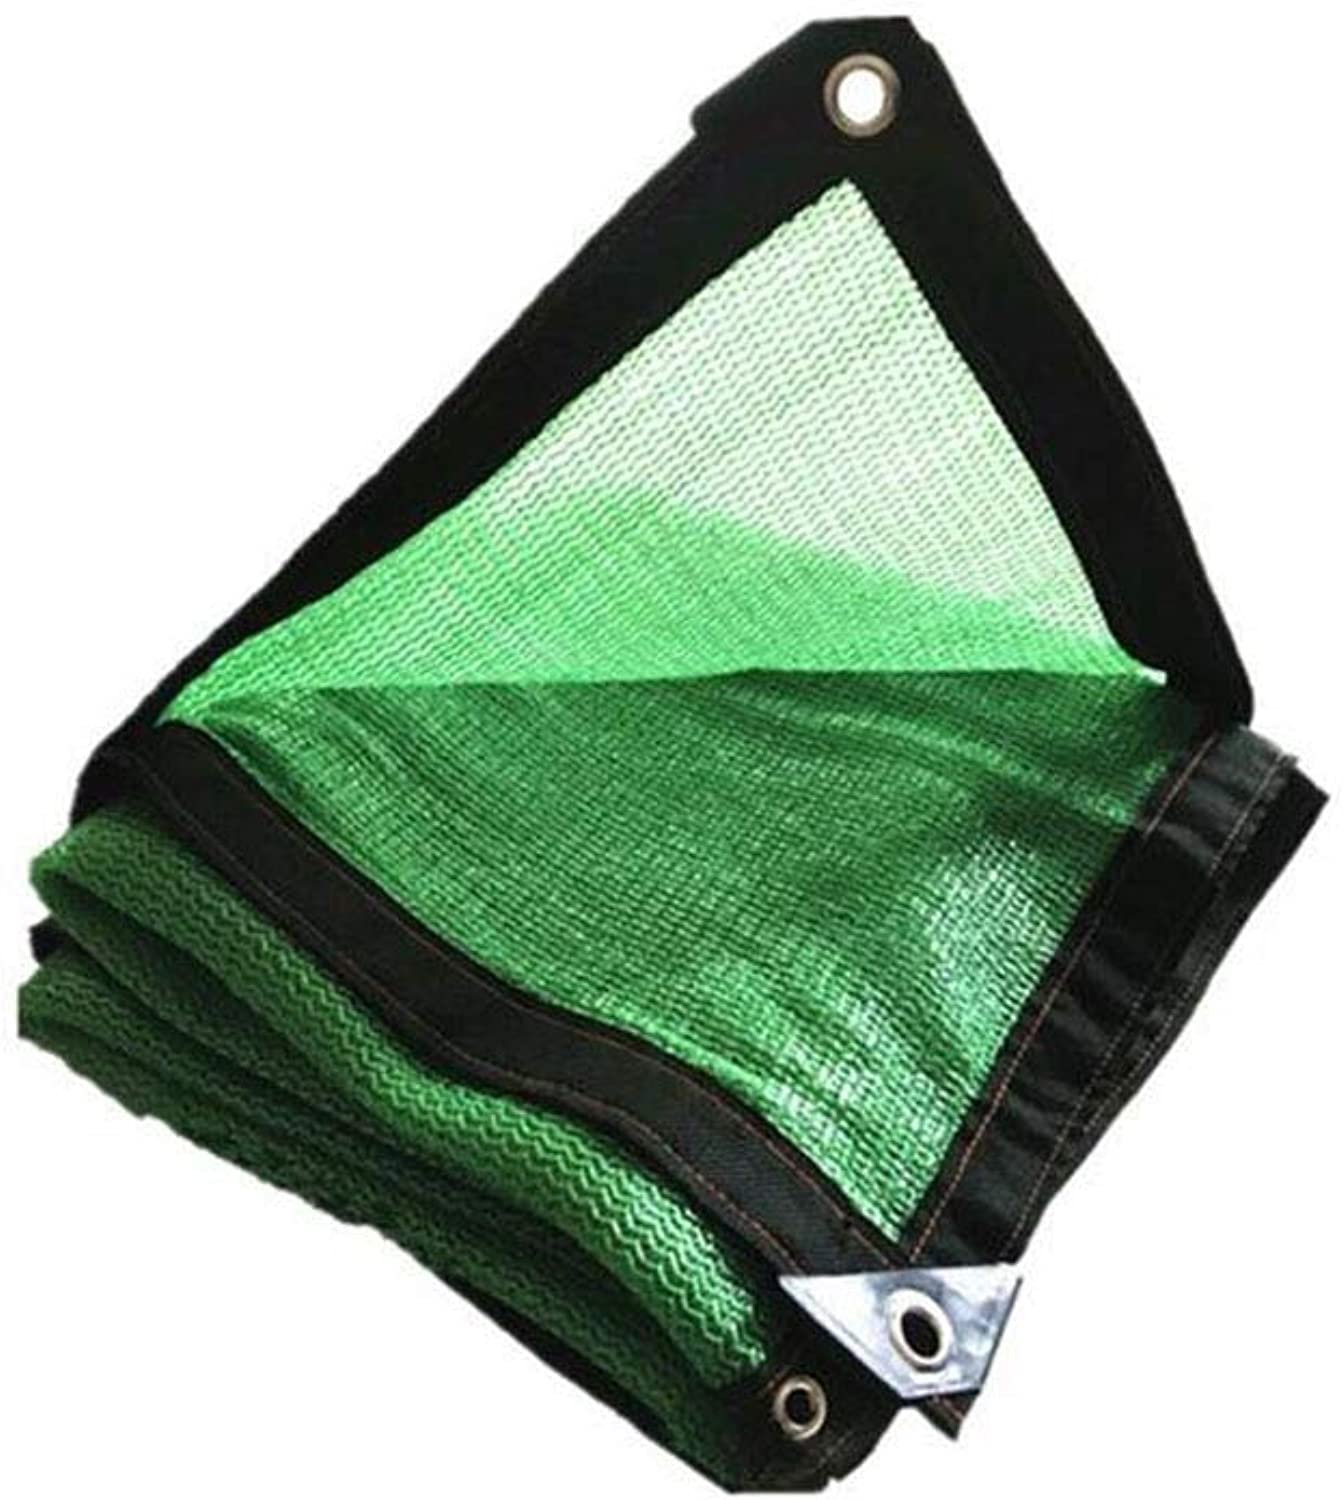 Shade Cloth, Shade Cloth Sunblock Shade Cloth Sun Shade Sail UV Resistant Net Garden Flower Plant Outdoor Canopy Patio Lawn (Size   2  3m)